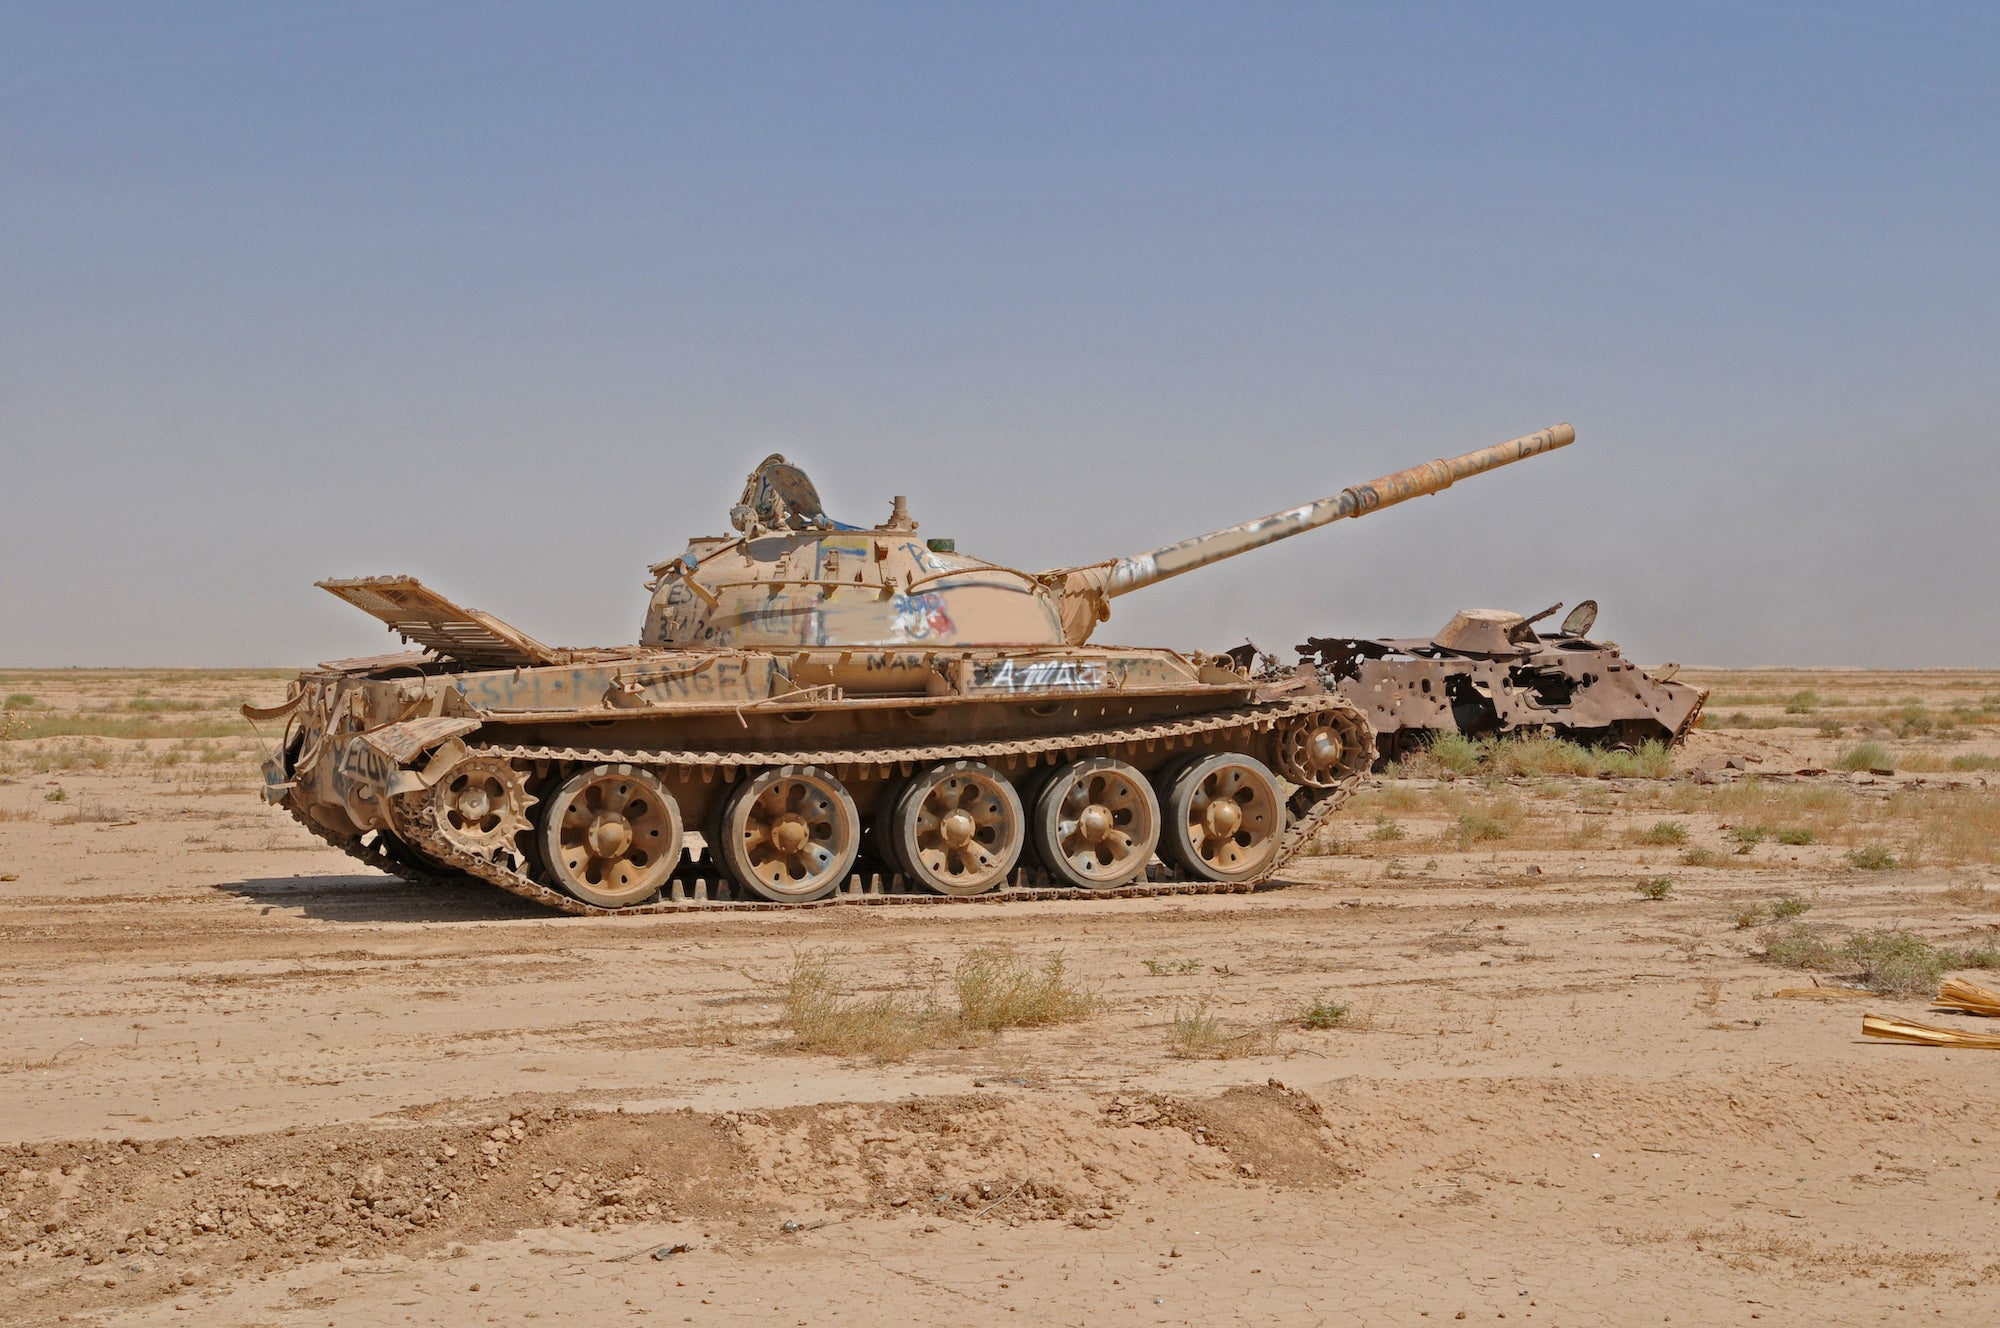 This remote-controlled landmine will attack tanks from above